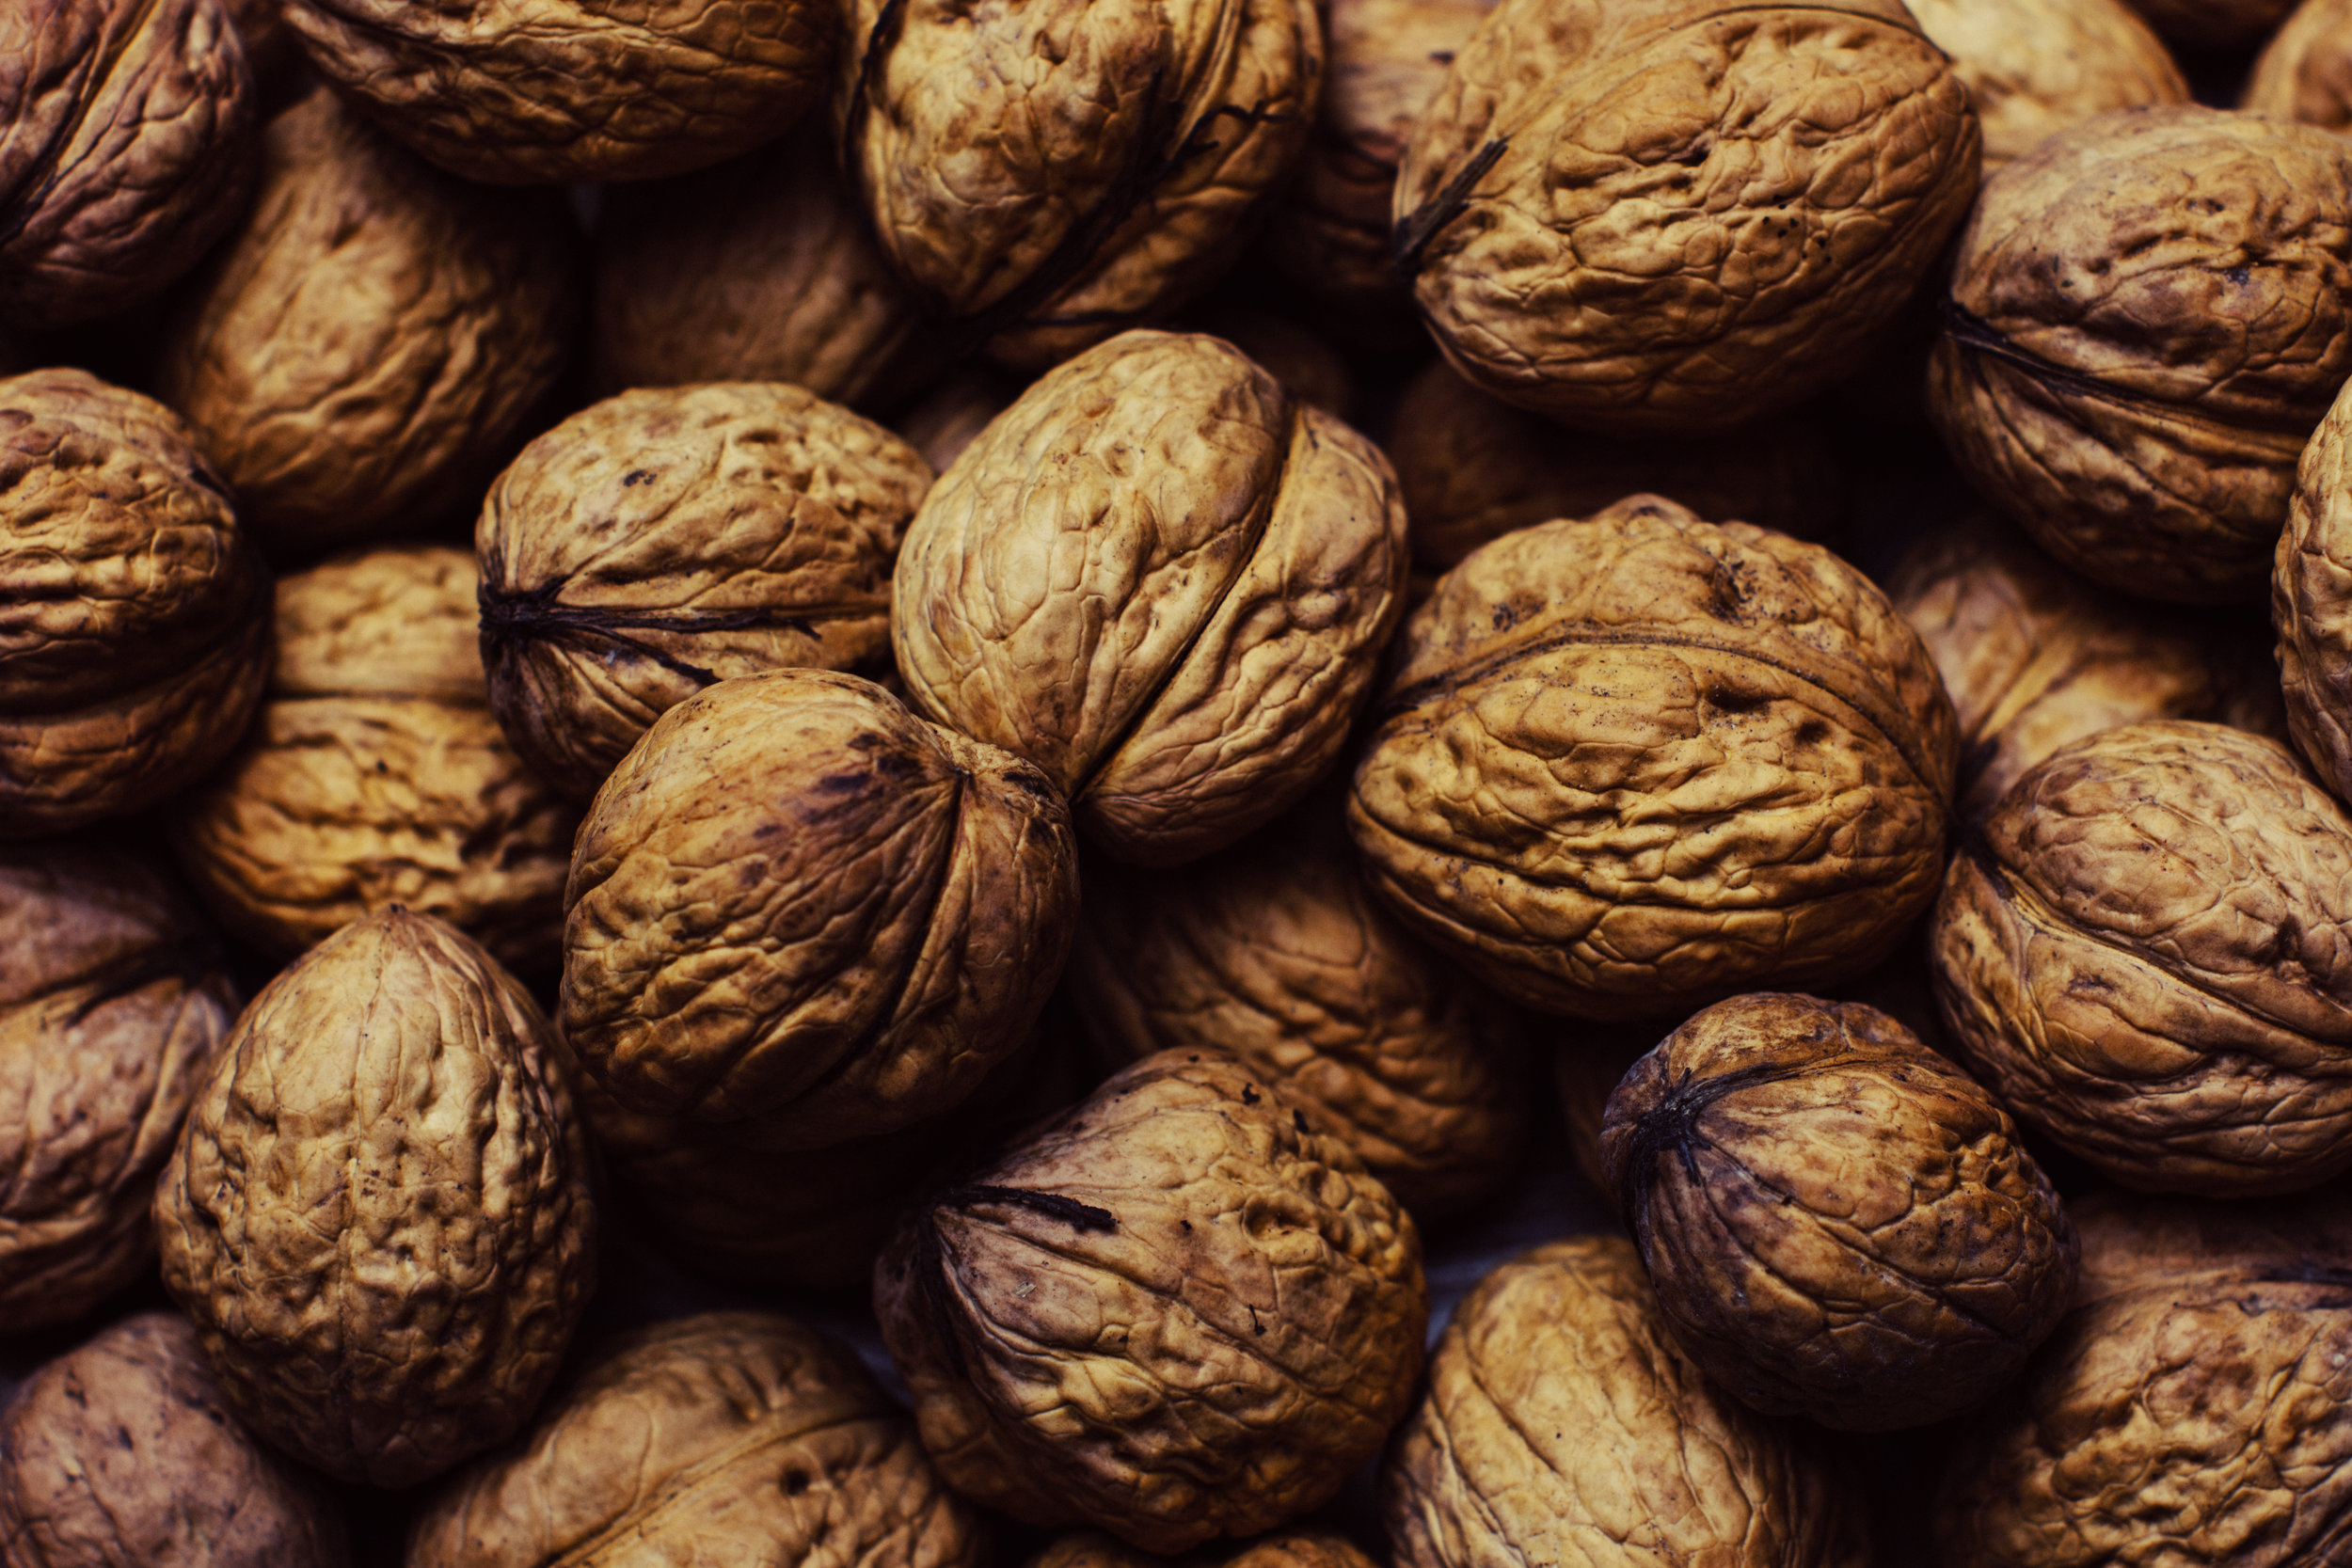 Soaked Nut    Healing Nutrient:  Alpha-linolenic acid  Improve Arterial Function   Soaked Nut Recipe